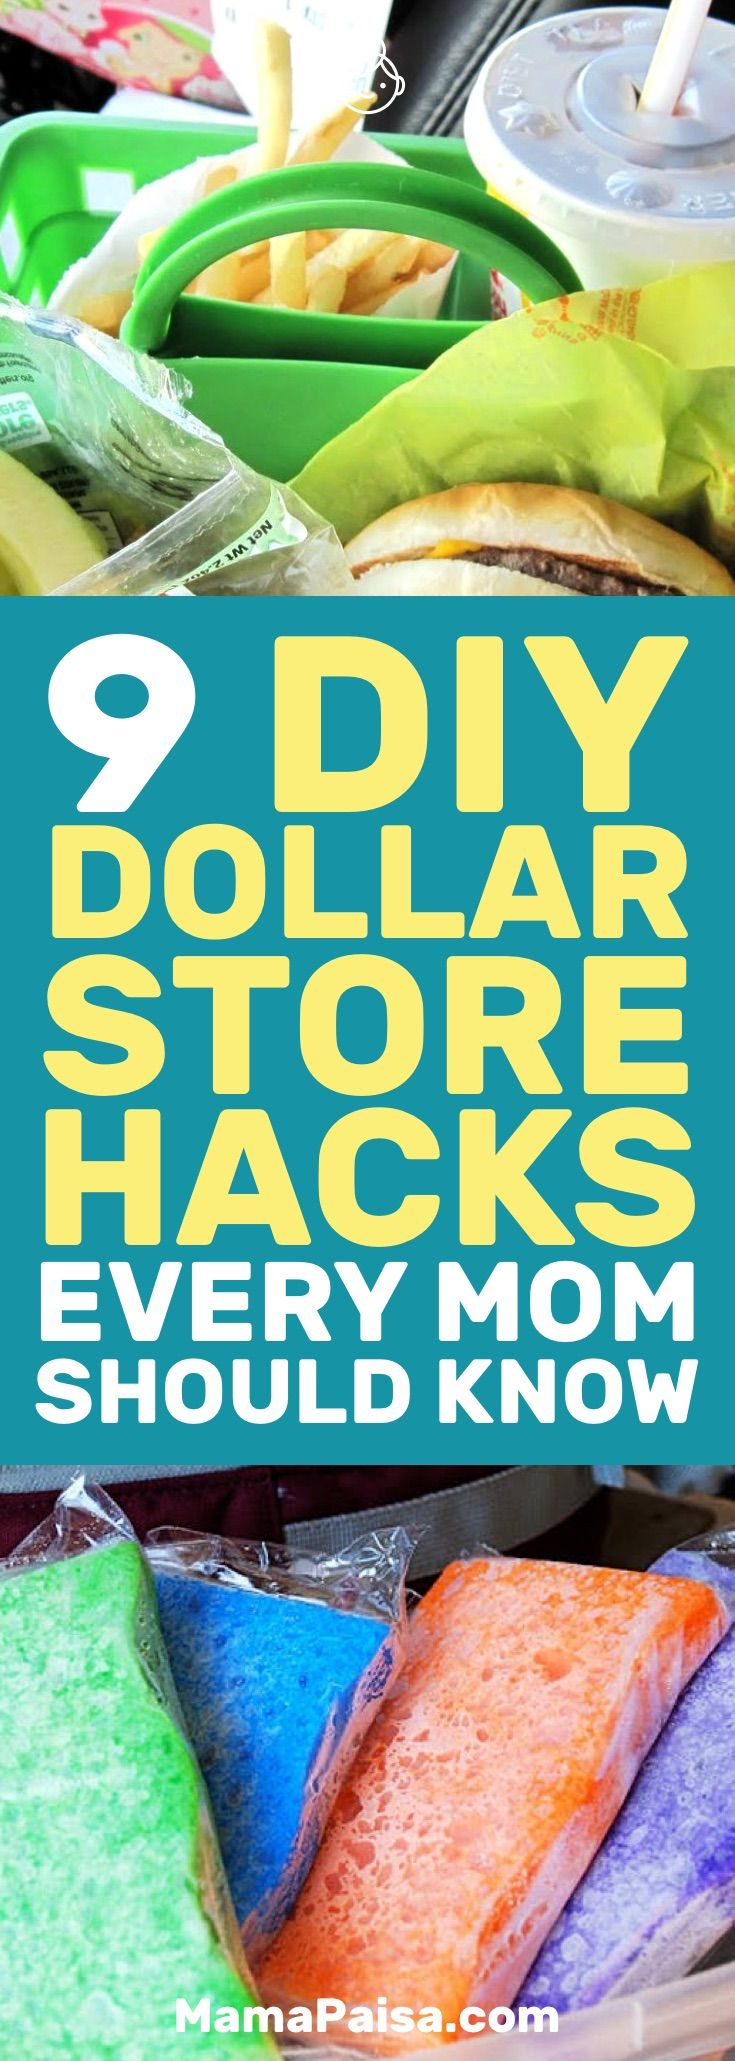 Dollar Store hacks can make your life a lot easier on a budget. These DIY Dollar Store hacks are really crazy.